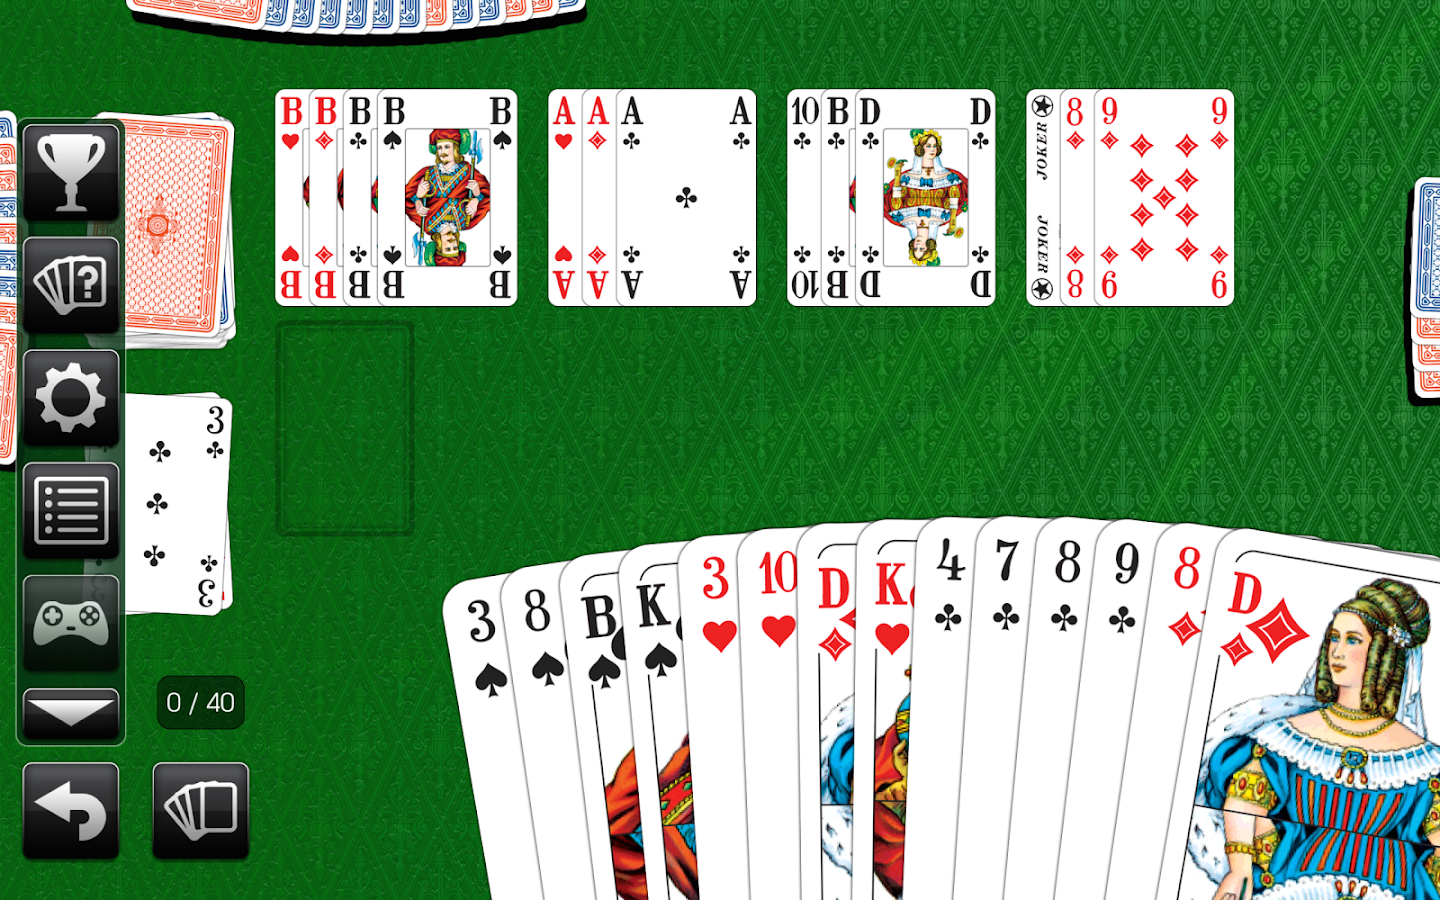 play rummy 500 online free without download